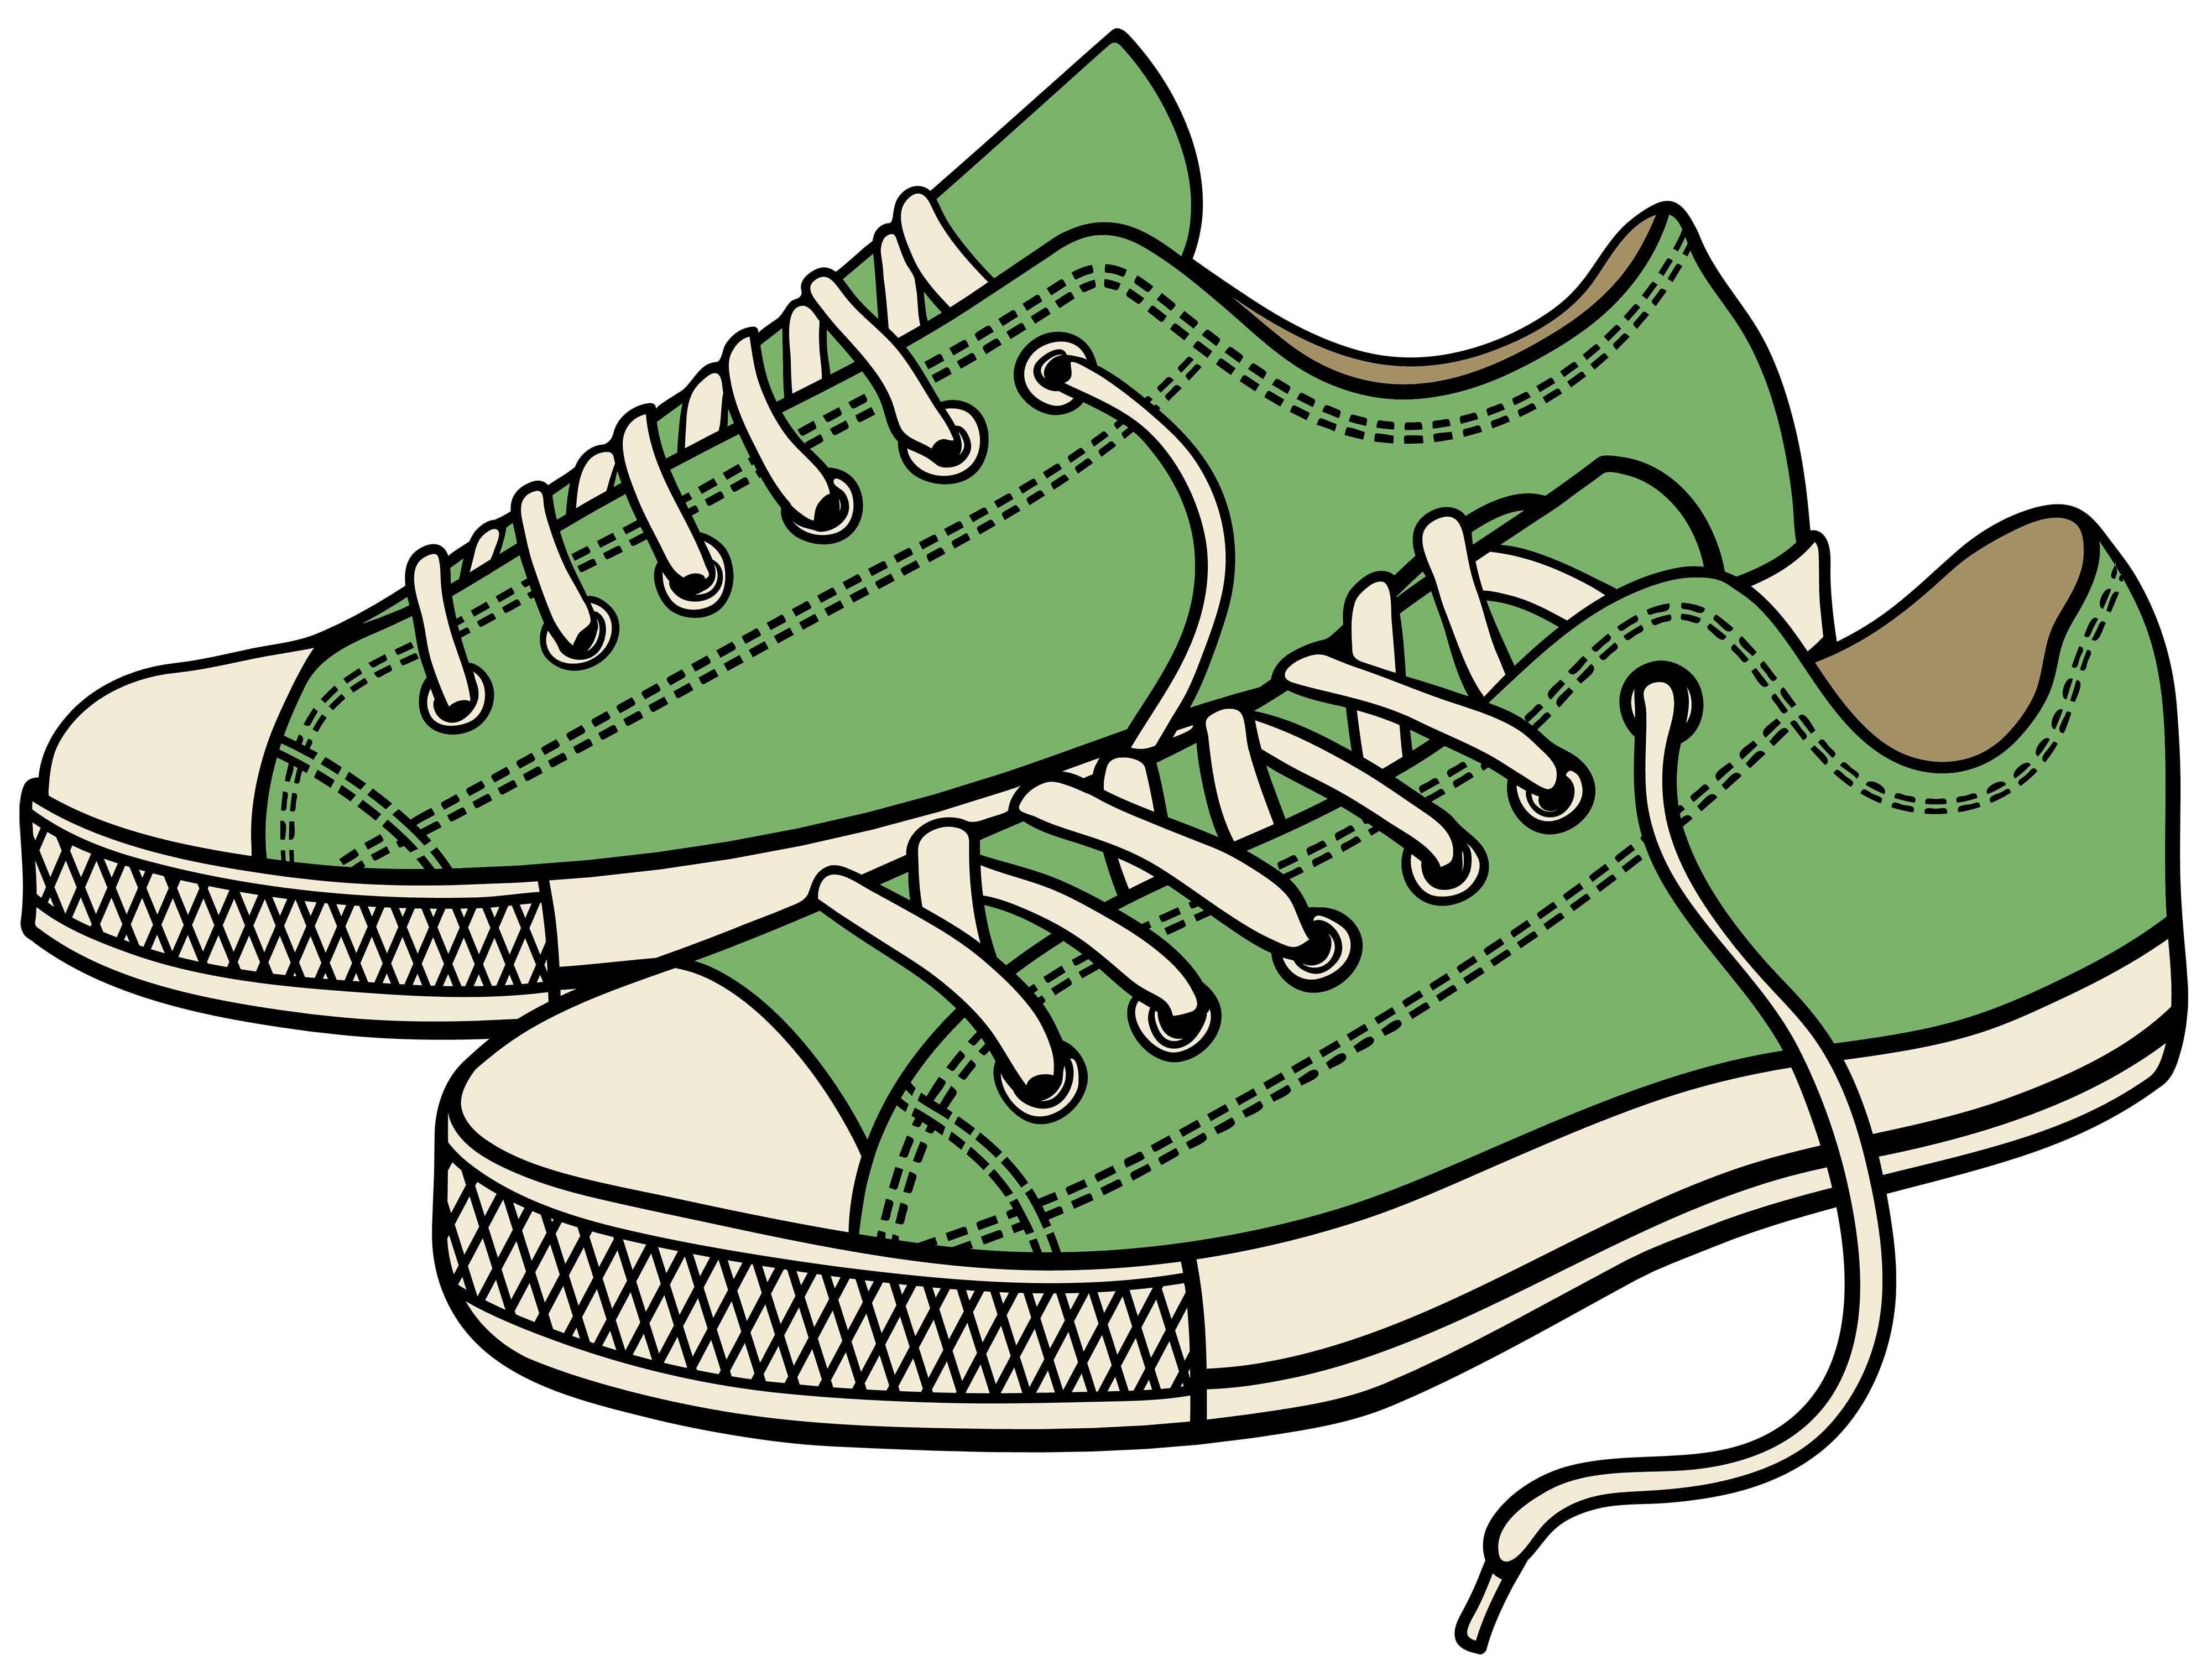 Converse clipart green clipart. Sneakers png best web